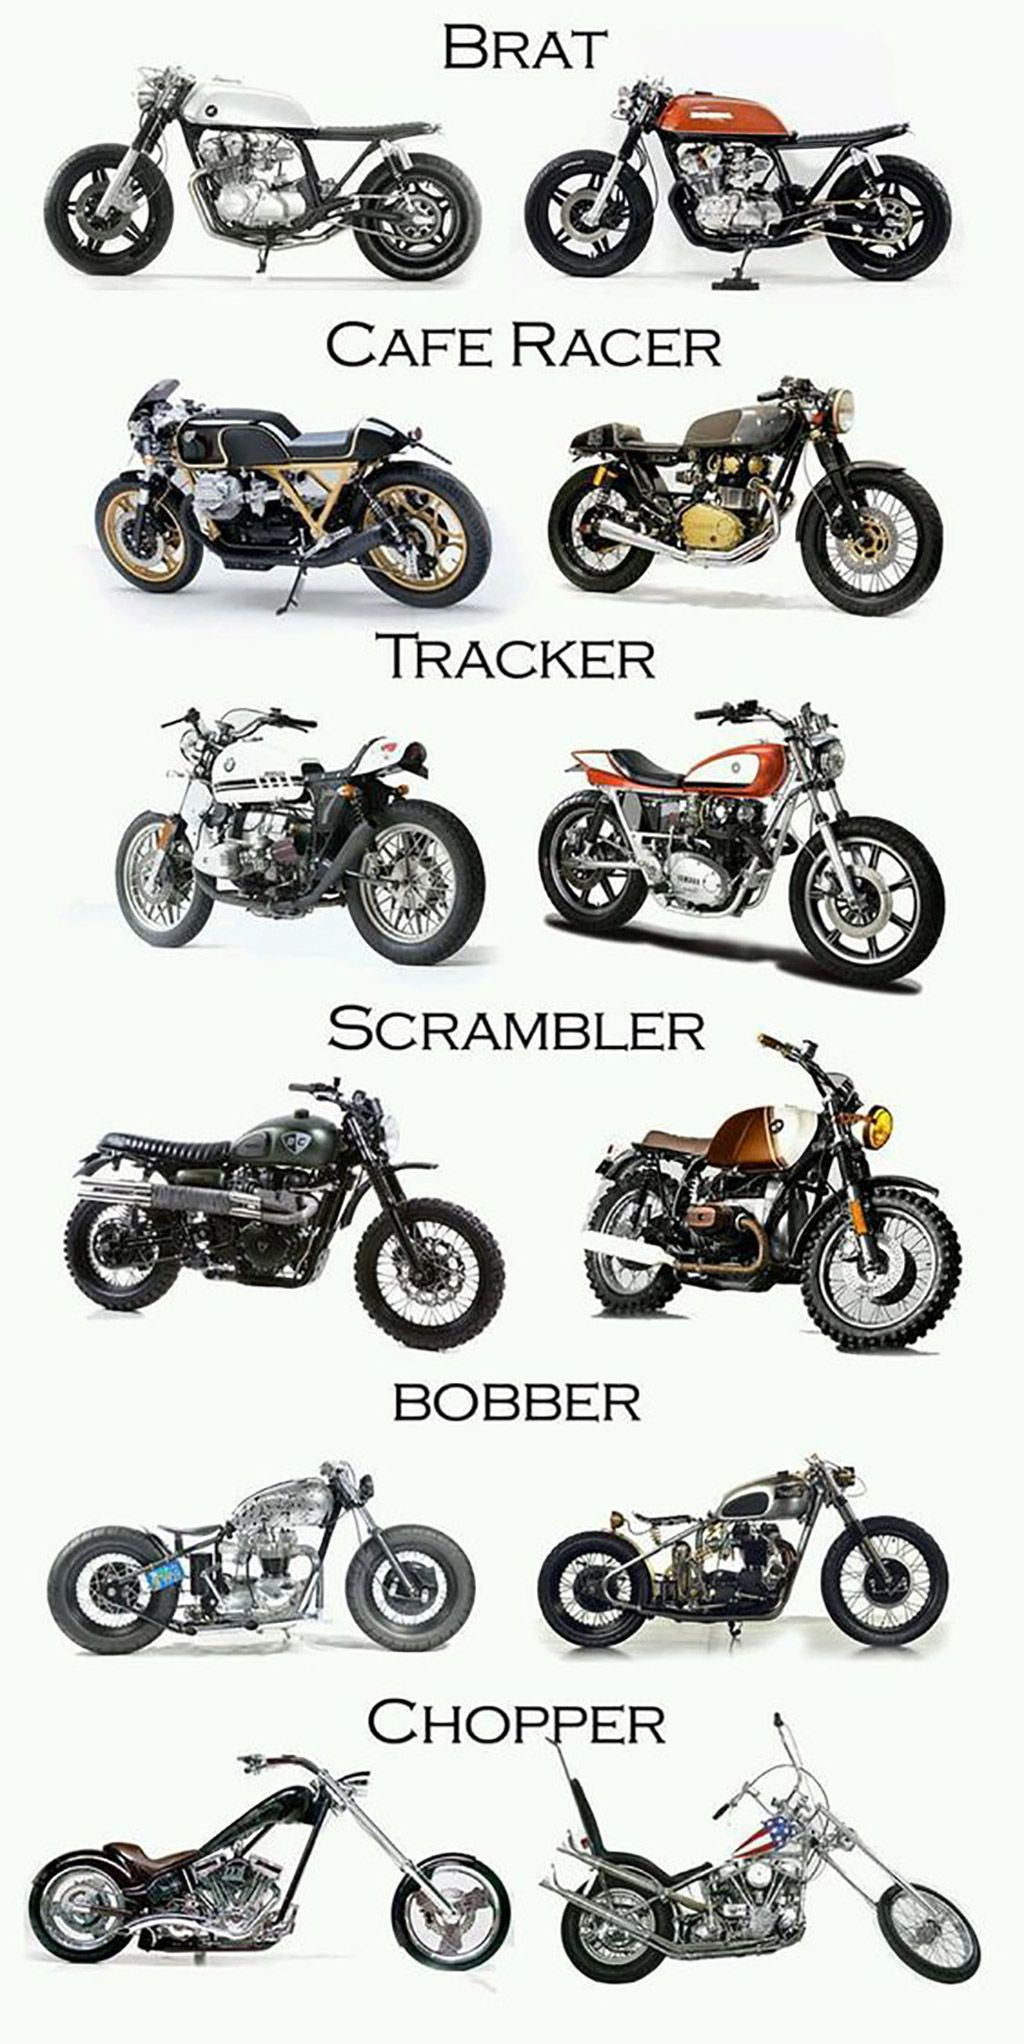 Various Motorcycles And Their Names In 2020 Scrambler